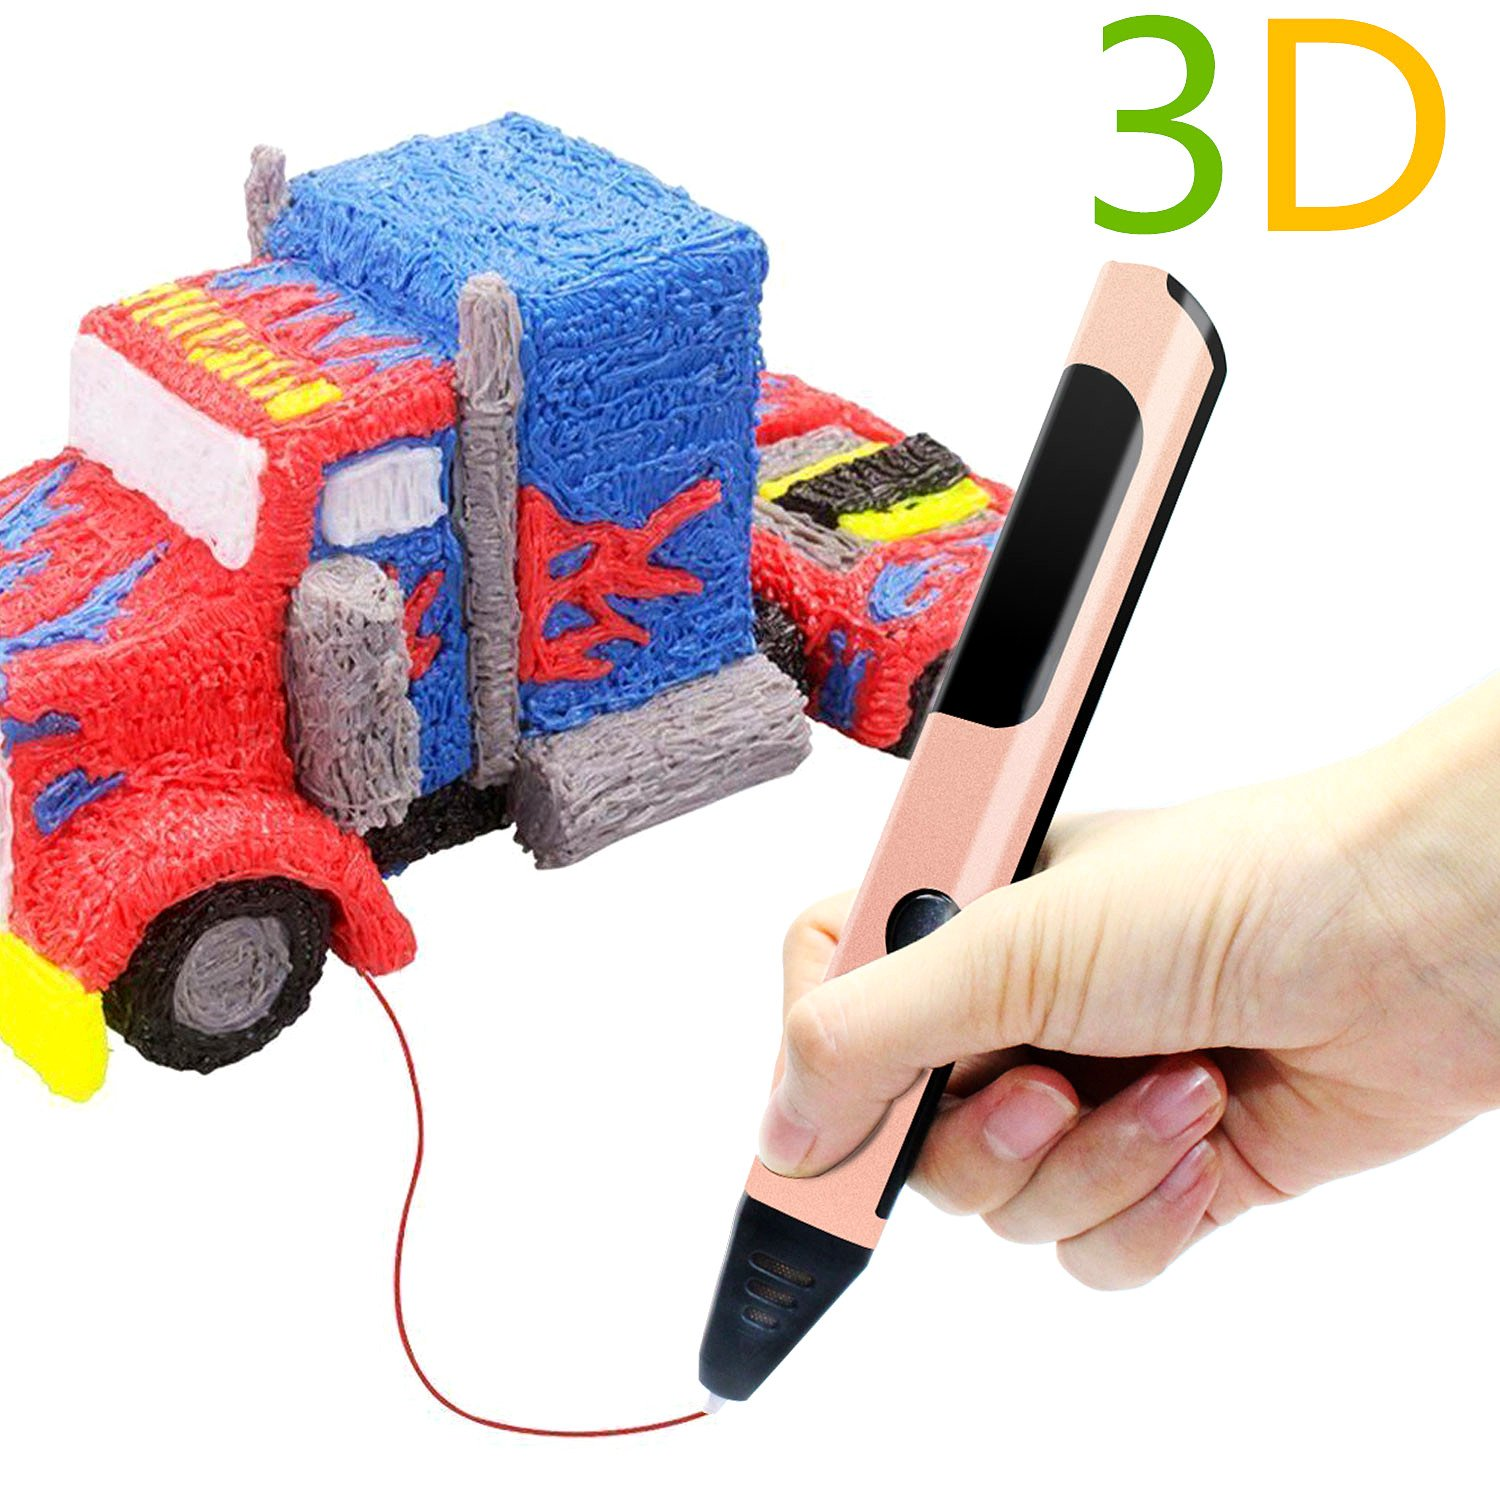 3D Printing Pen, Intelligent 3D Pen Gifts and Toys for Boys & Girls-Modern Arts and Crafts Compatible with PCL Filament + 2 Free 1.75mm Filament Refills AL' IVER